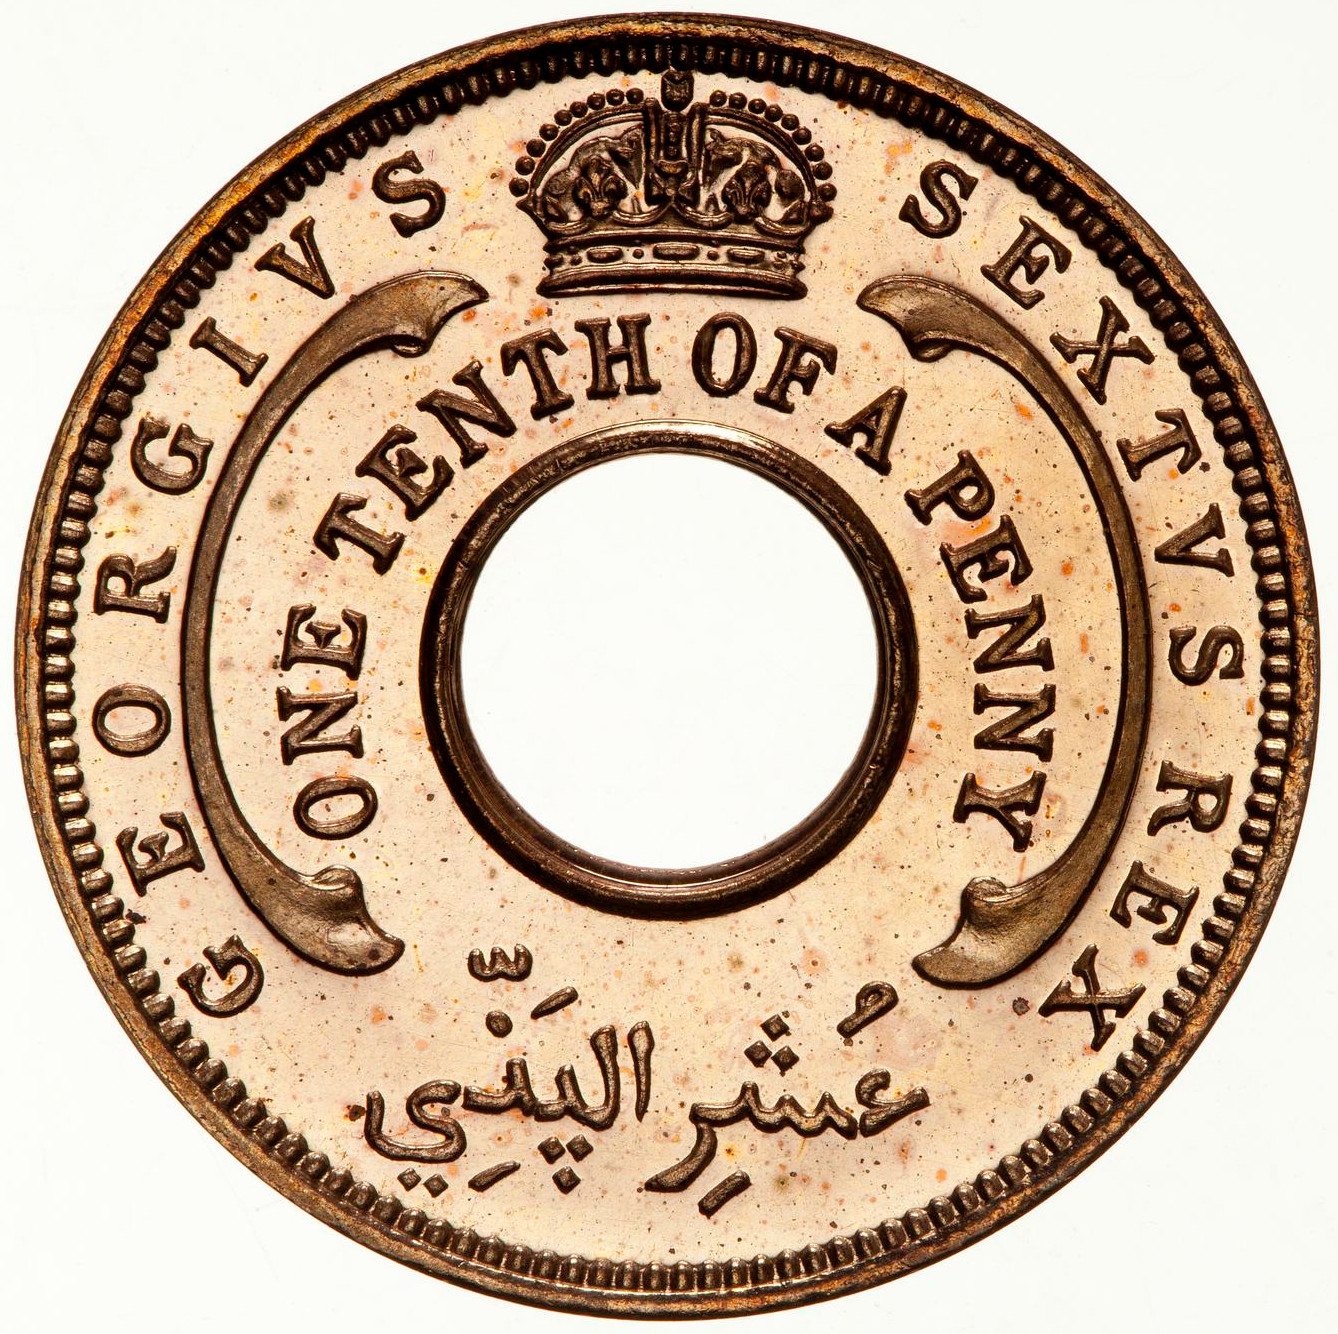 One-tenth Penny: Photo Proof Coin - 1/10 Penny, British West Africa, 1952